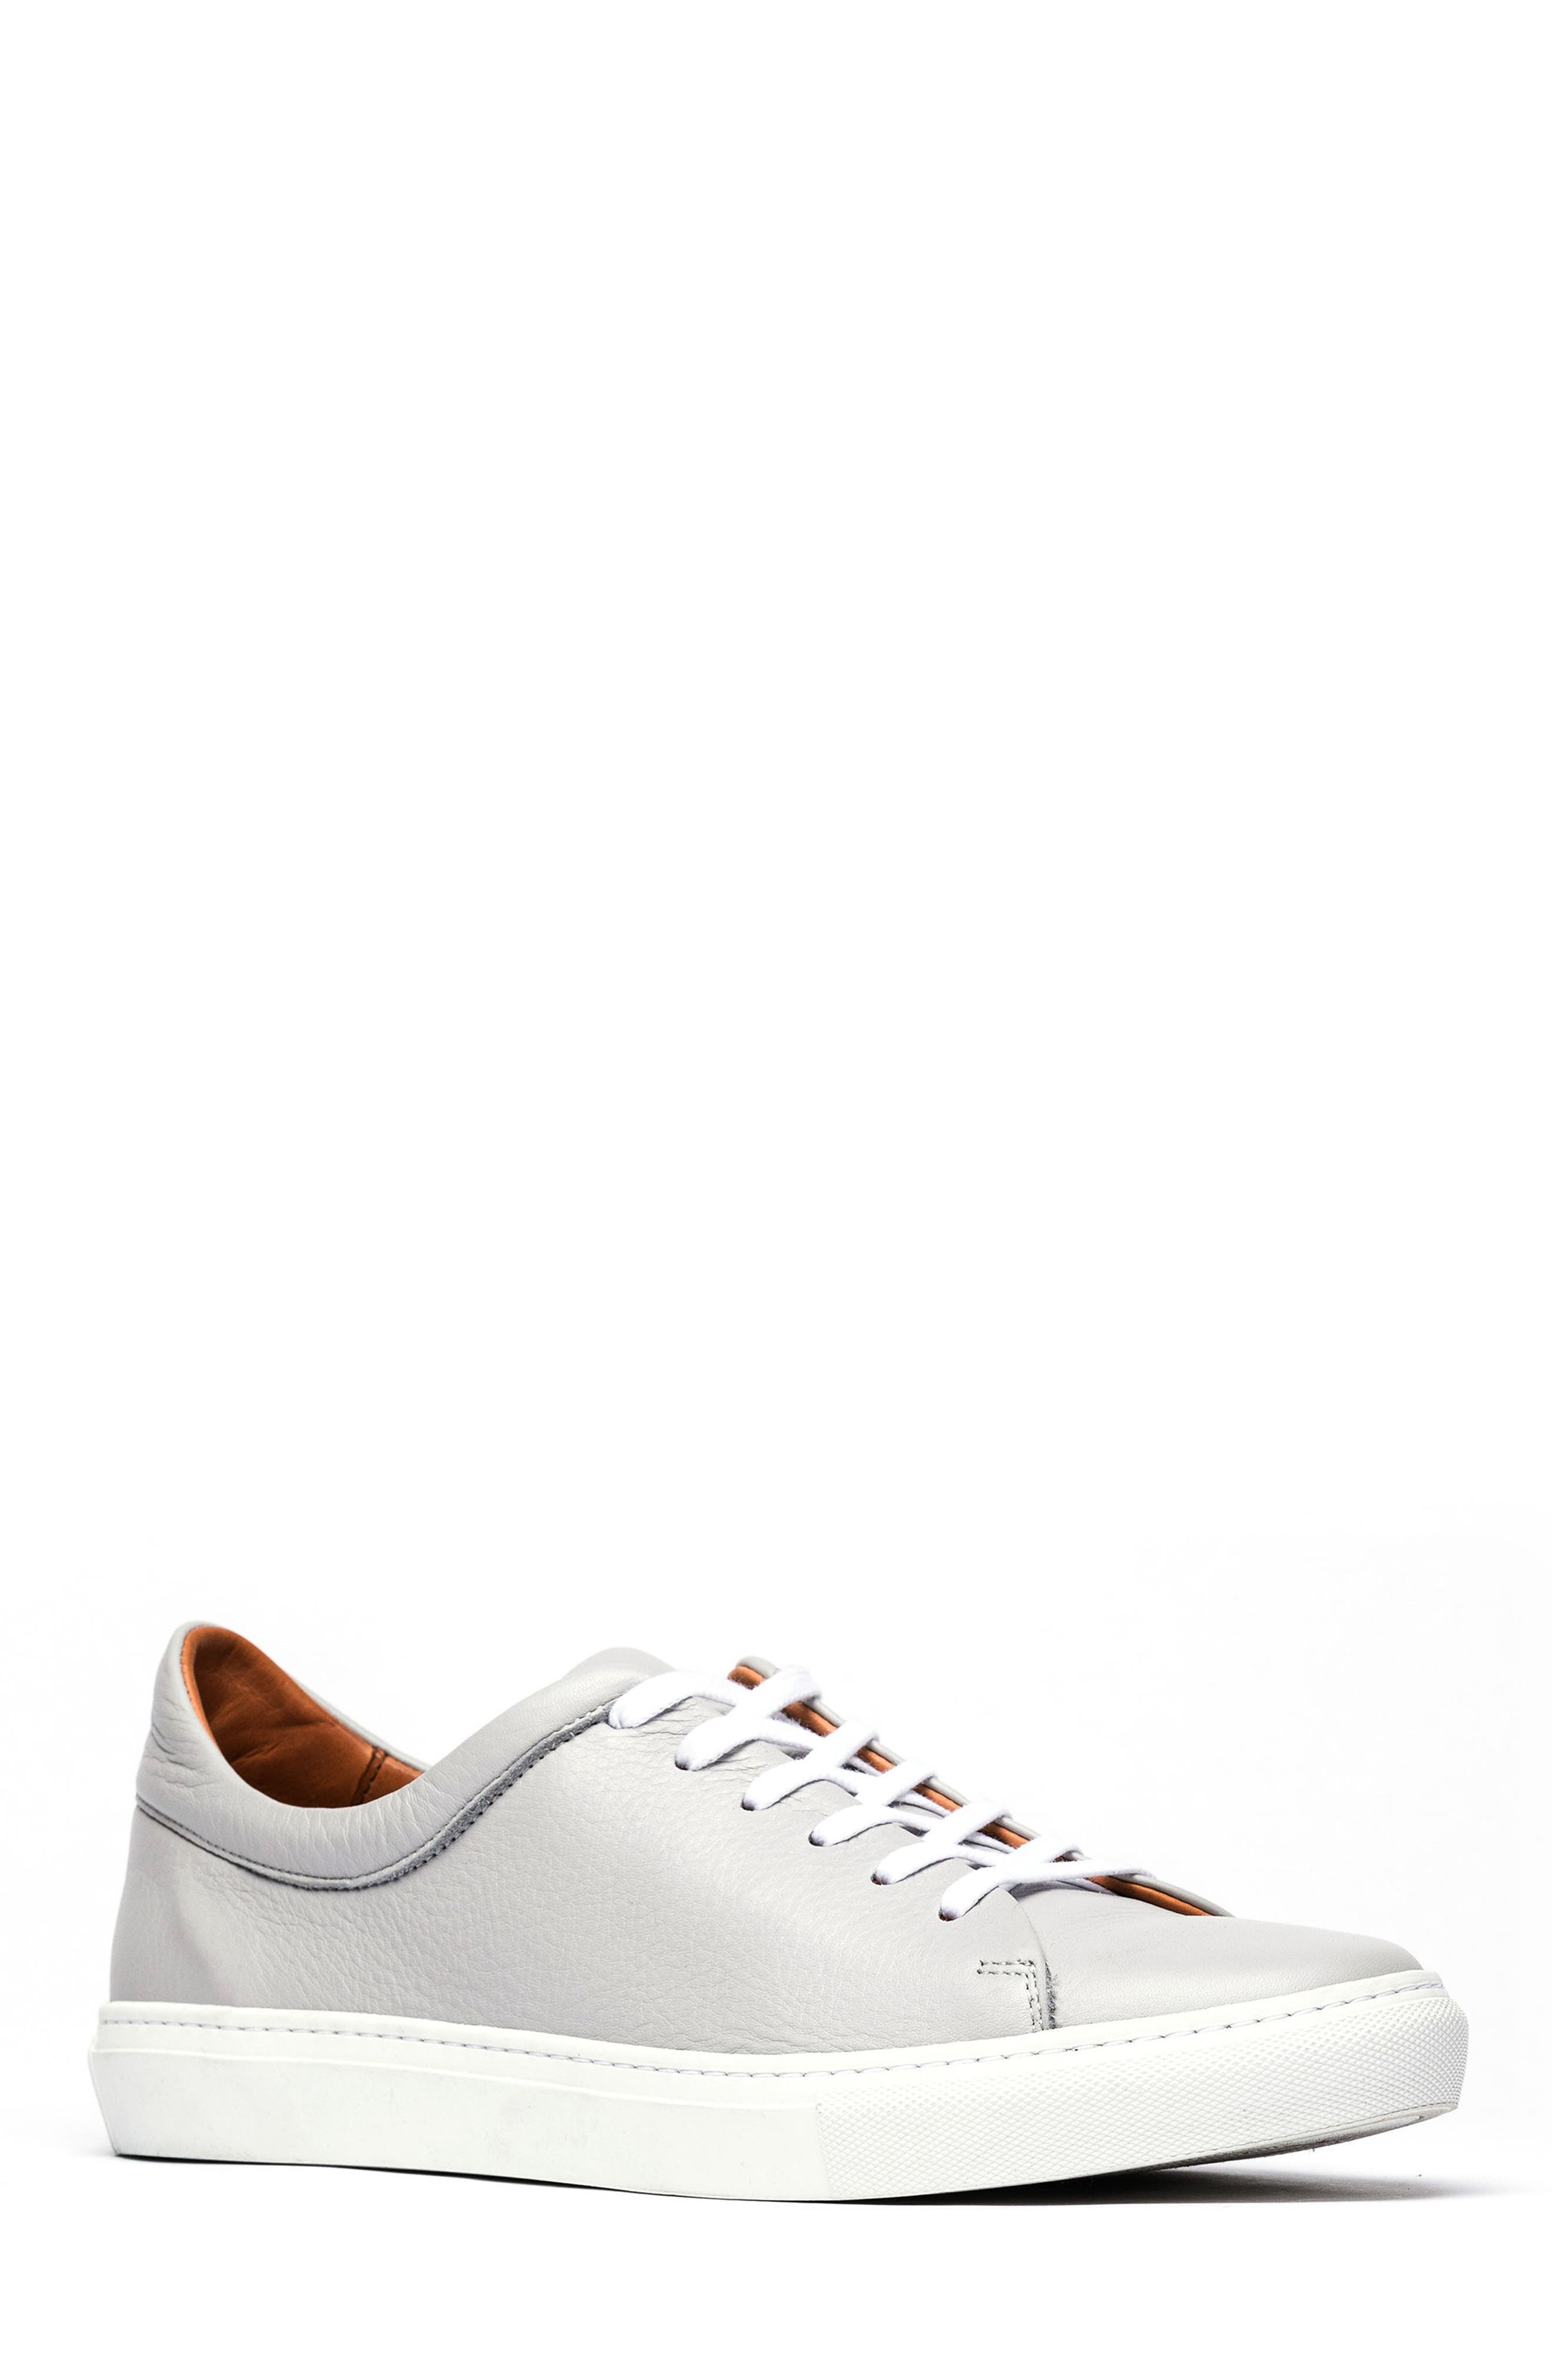 Windemere Sneaker,                             Main thumbnail 1, color,                             Stone Leather